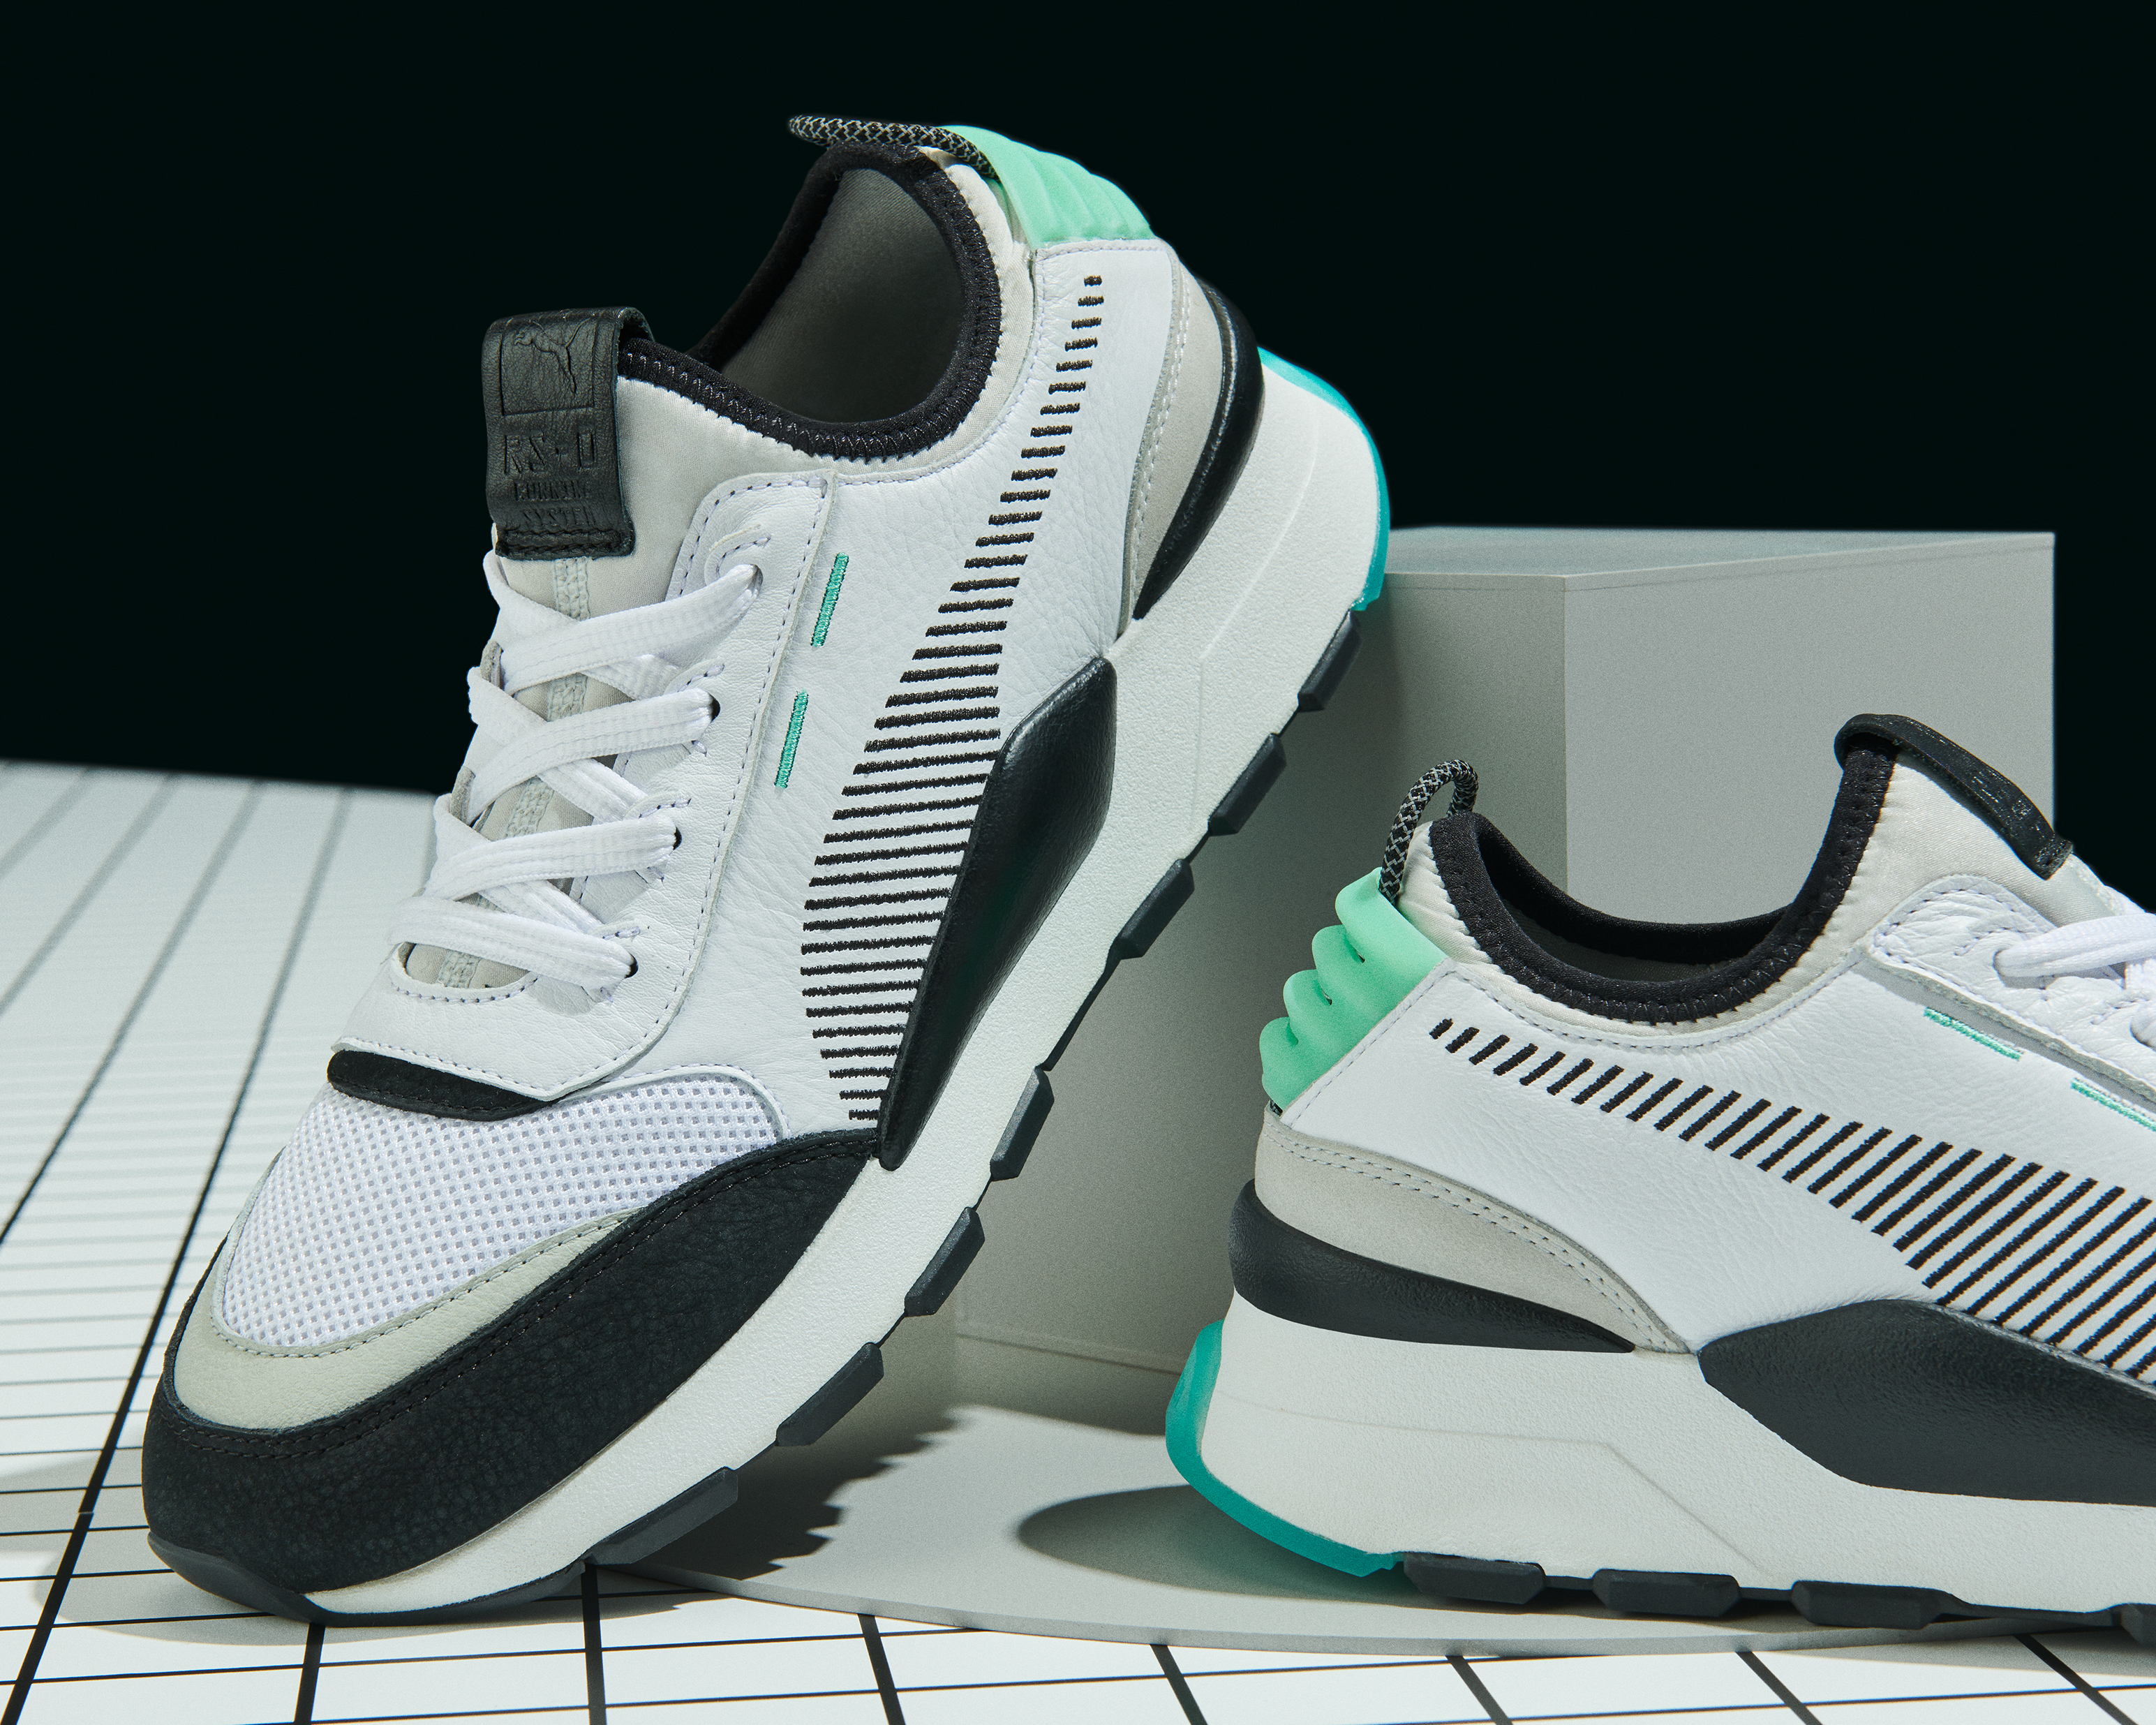 PUMA R-SYSTEM: A Story of Reinvention